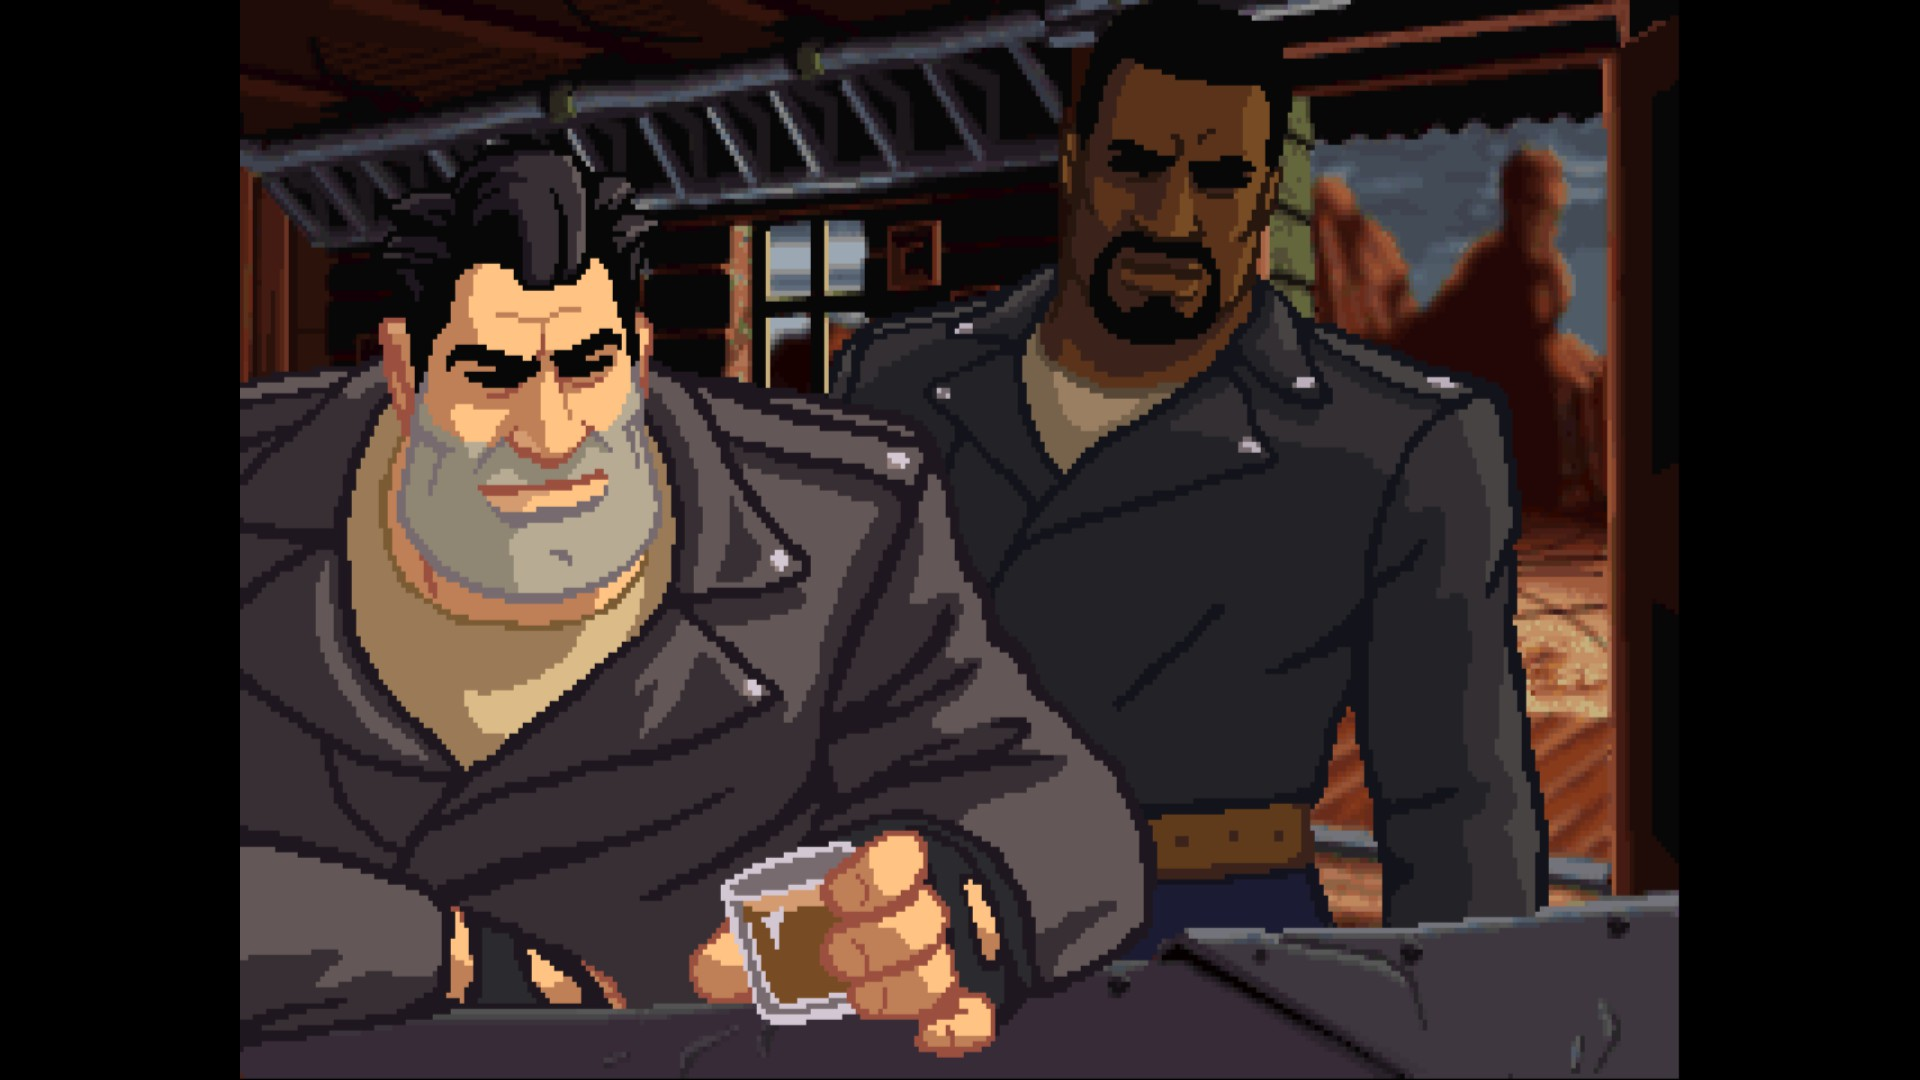 Full Throttle Remastered WLB